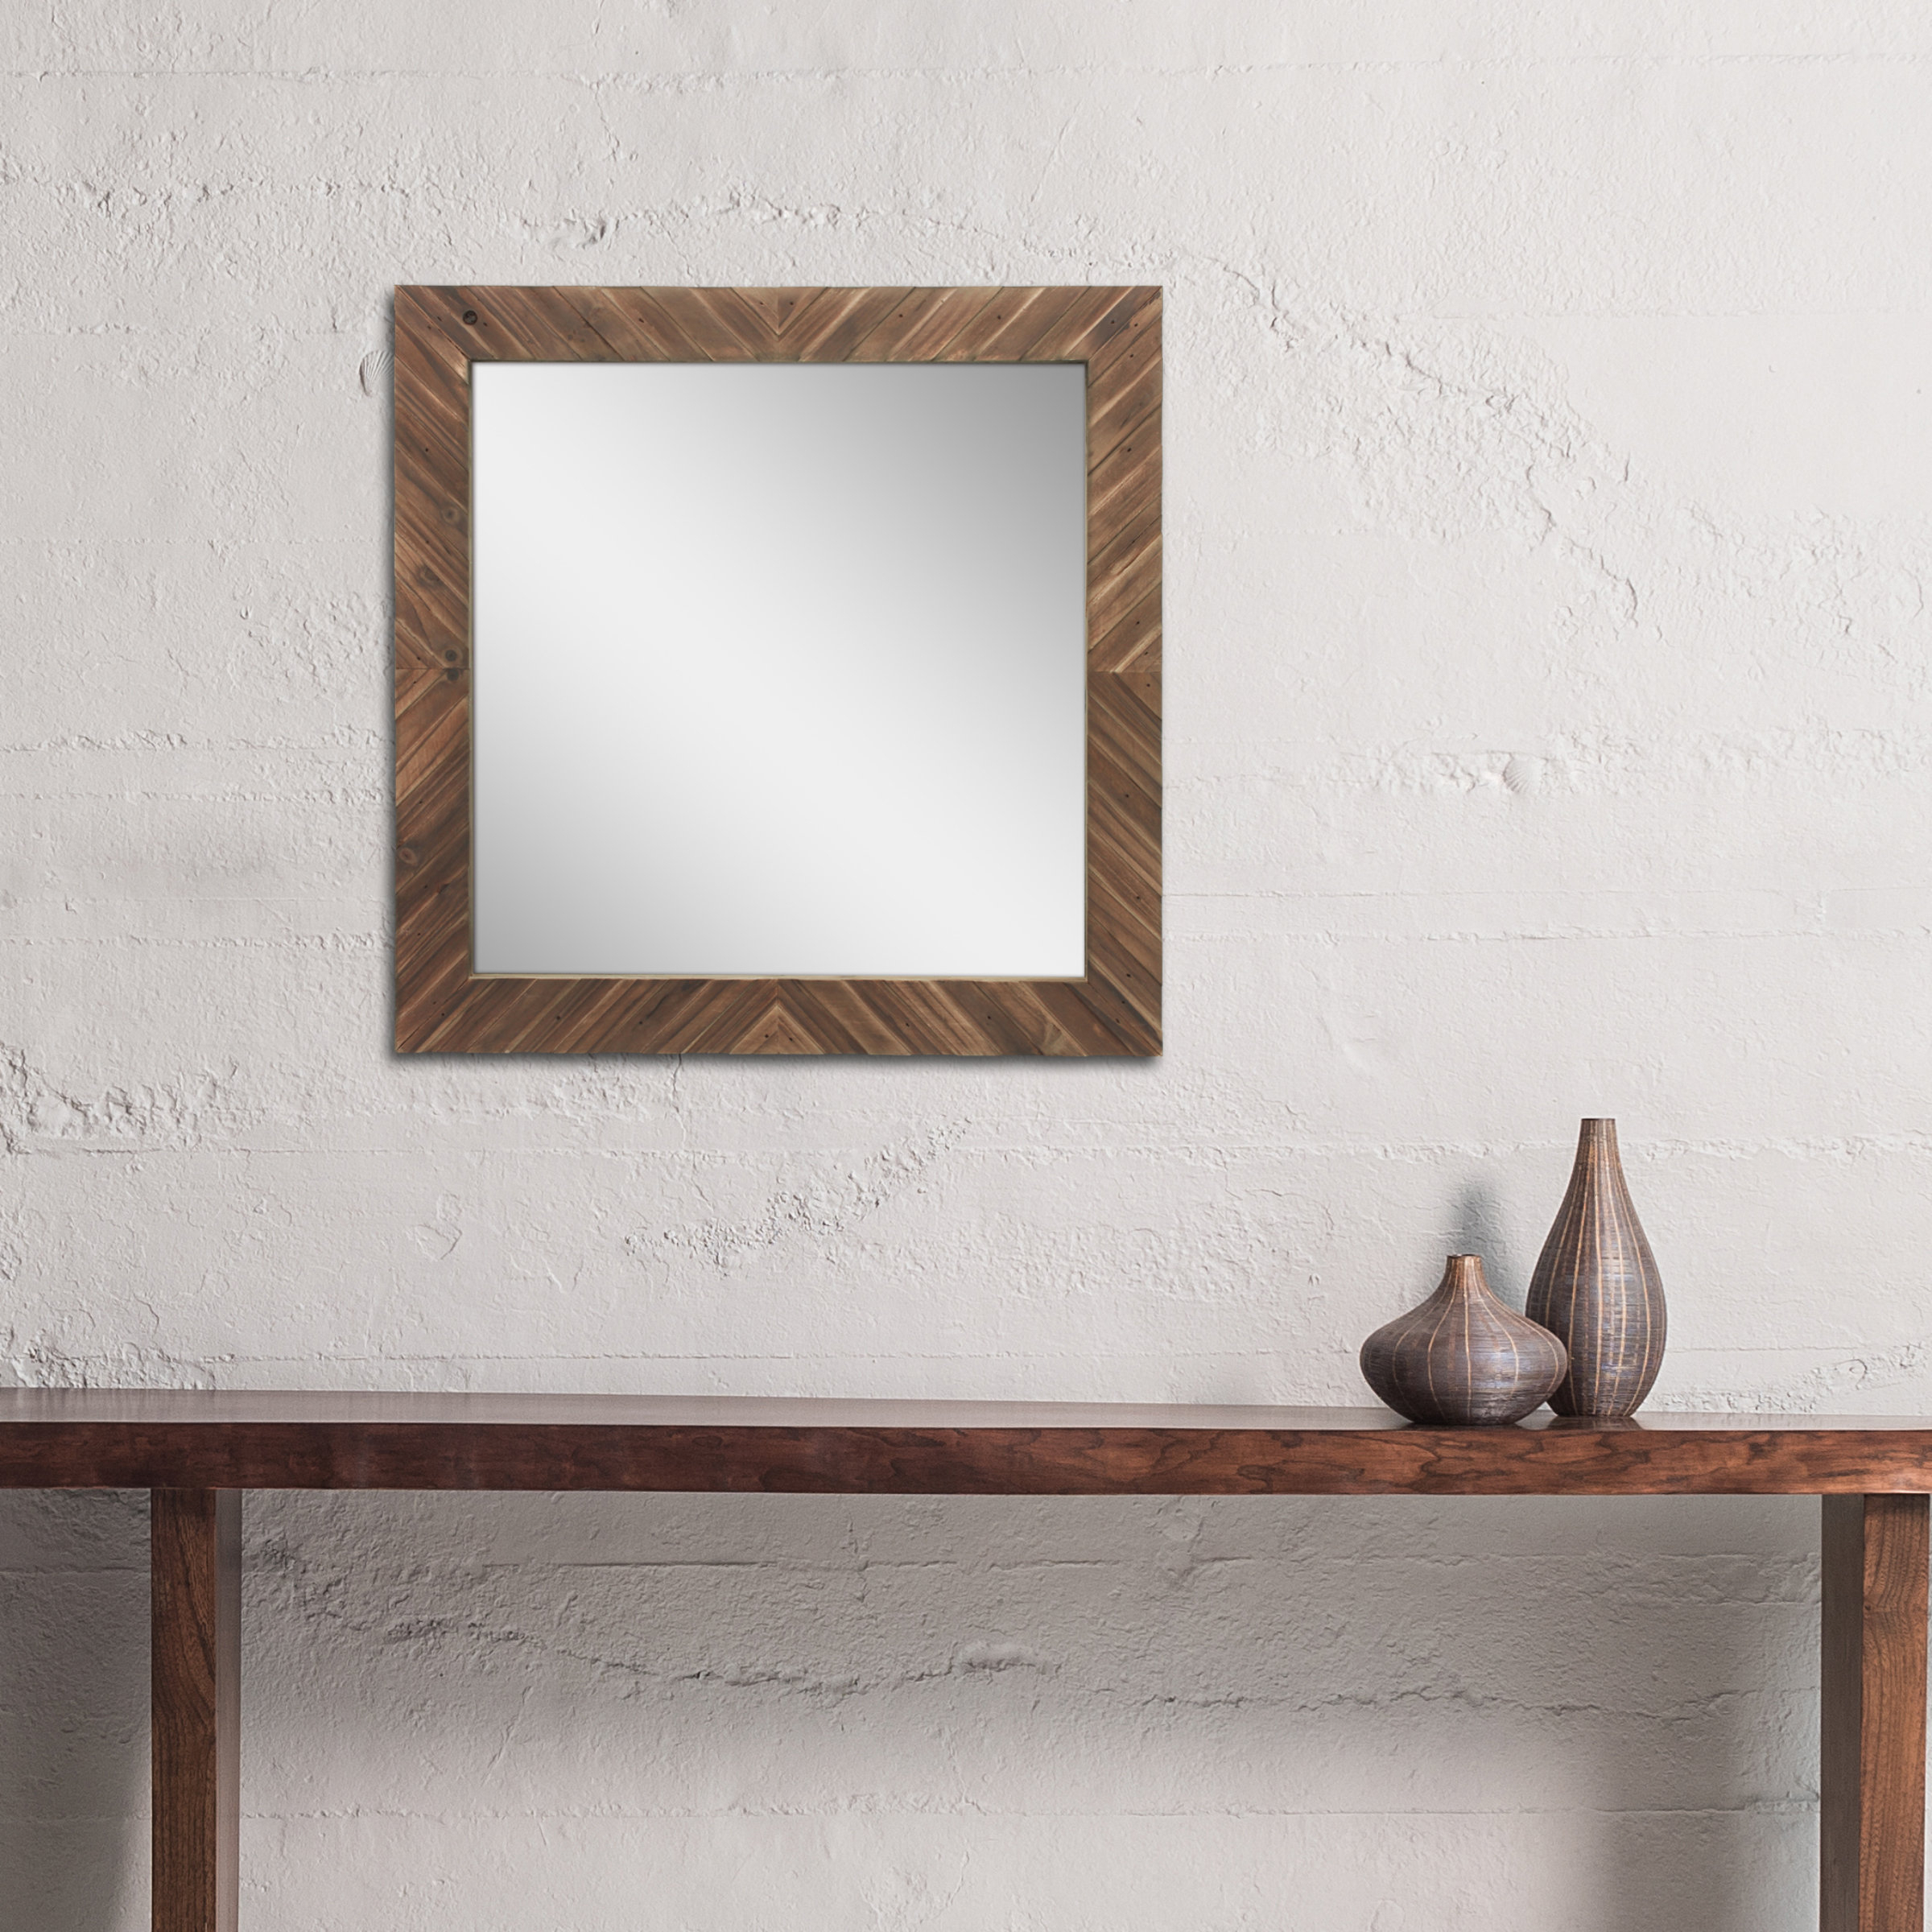 Costin Textured Wooden Wall Accent Mirror Intended For Most Recent Wooden Wall Mirrors (View 7 of 20)